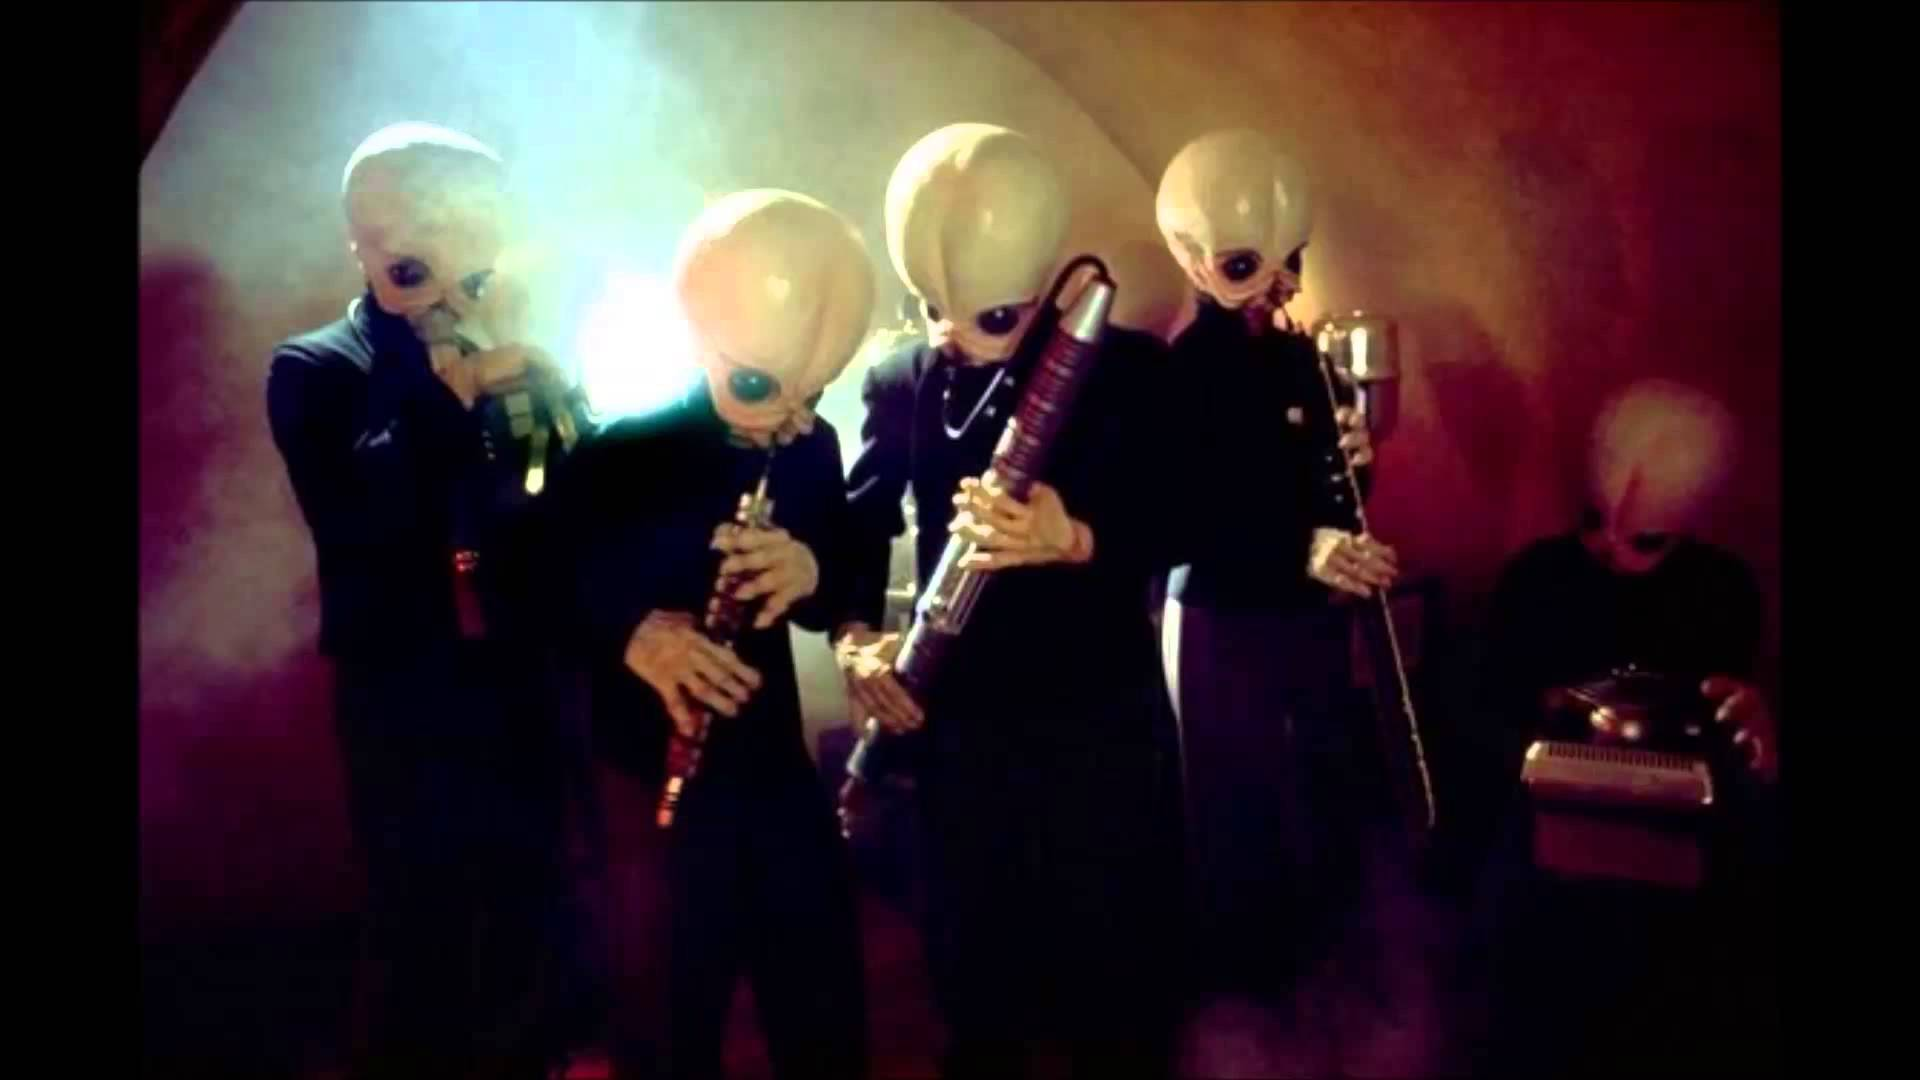 Australians Enjoyed Banging To The Star Wars Cantina Band More Than Anything Else Last Year